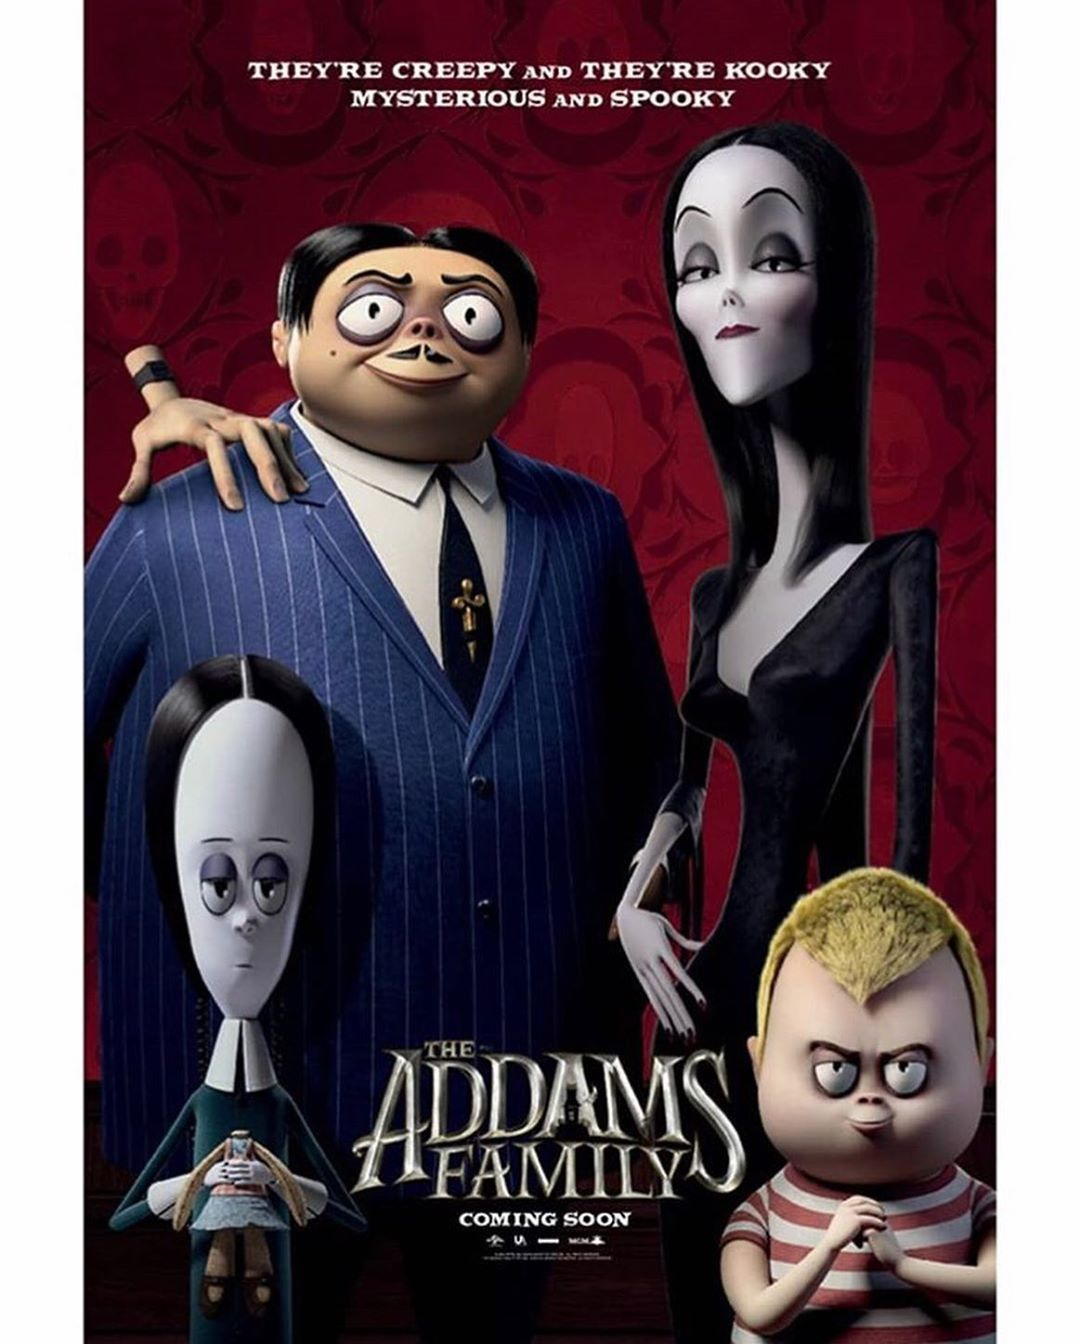 They Re All Together Ooky The Addams Family See Morticia Gomez Wednesday And Pugsley In The Family Movie Poster Addams Family Movie Addams Family Poster